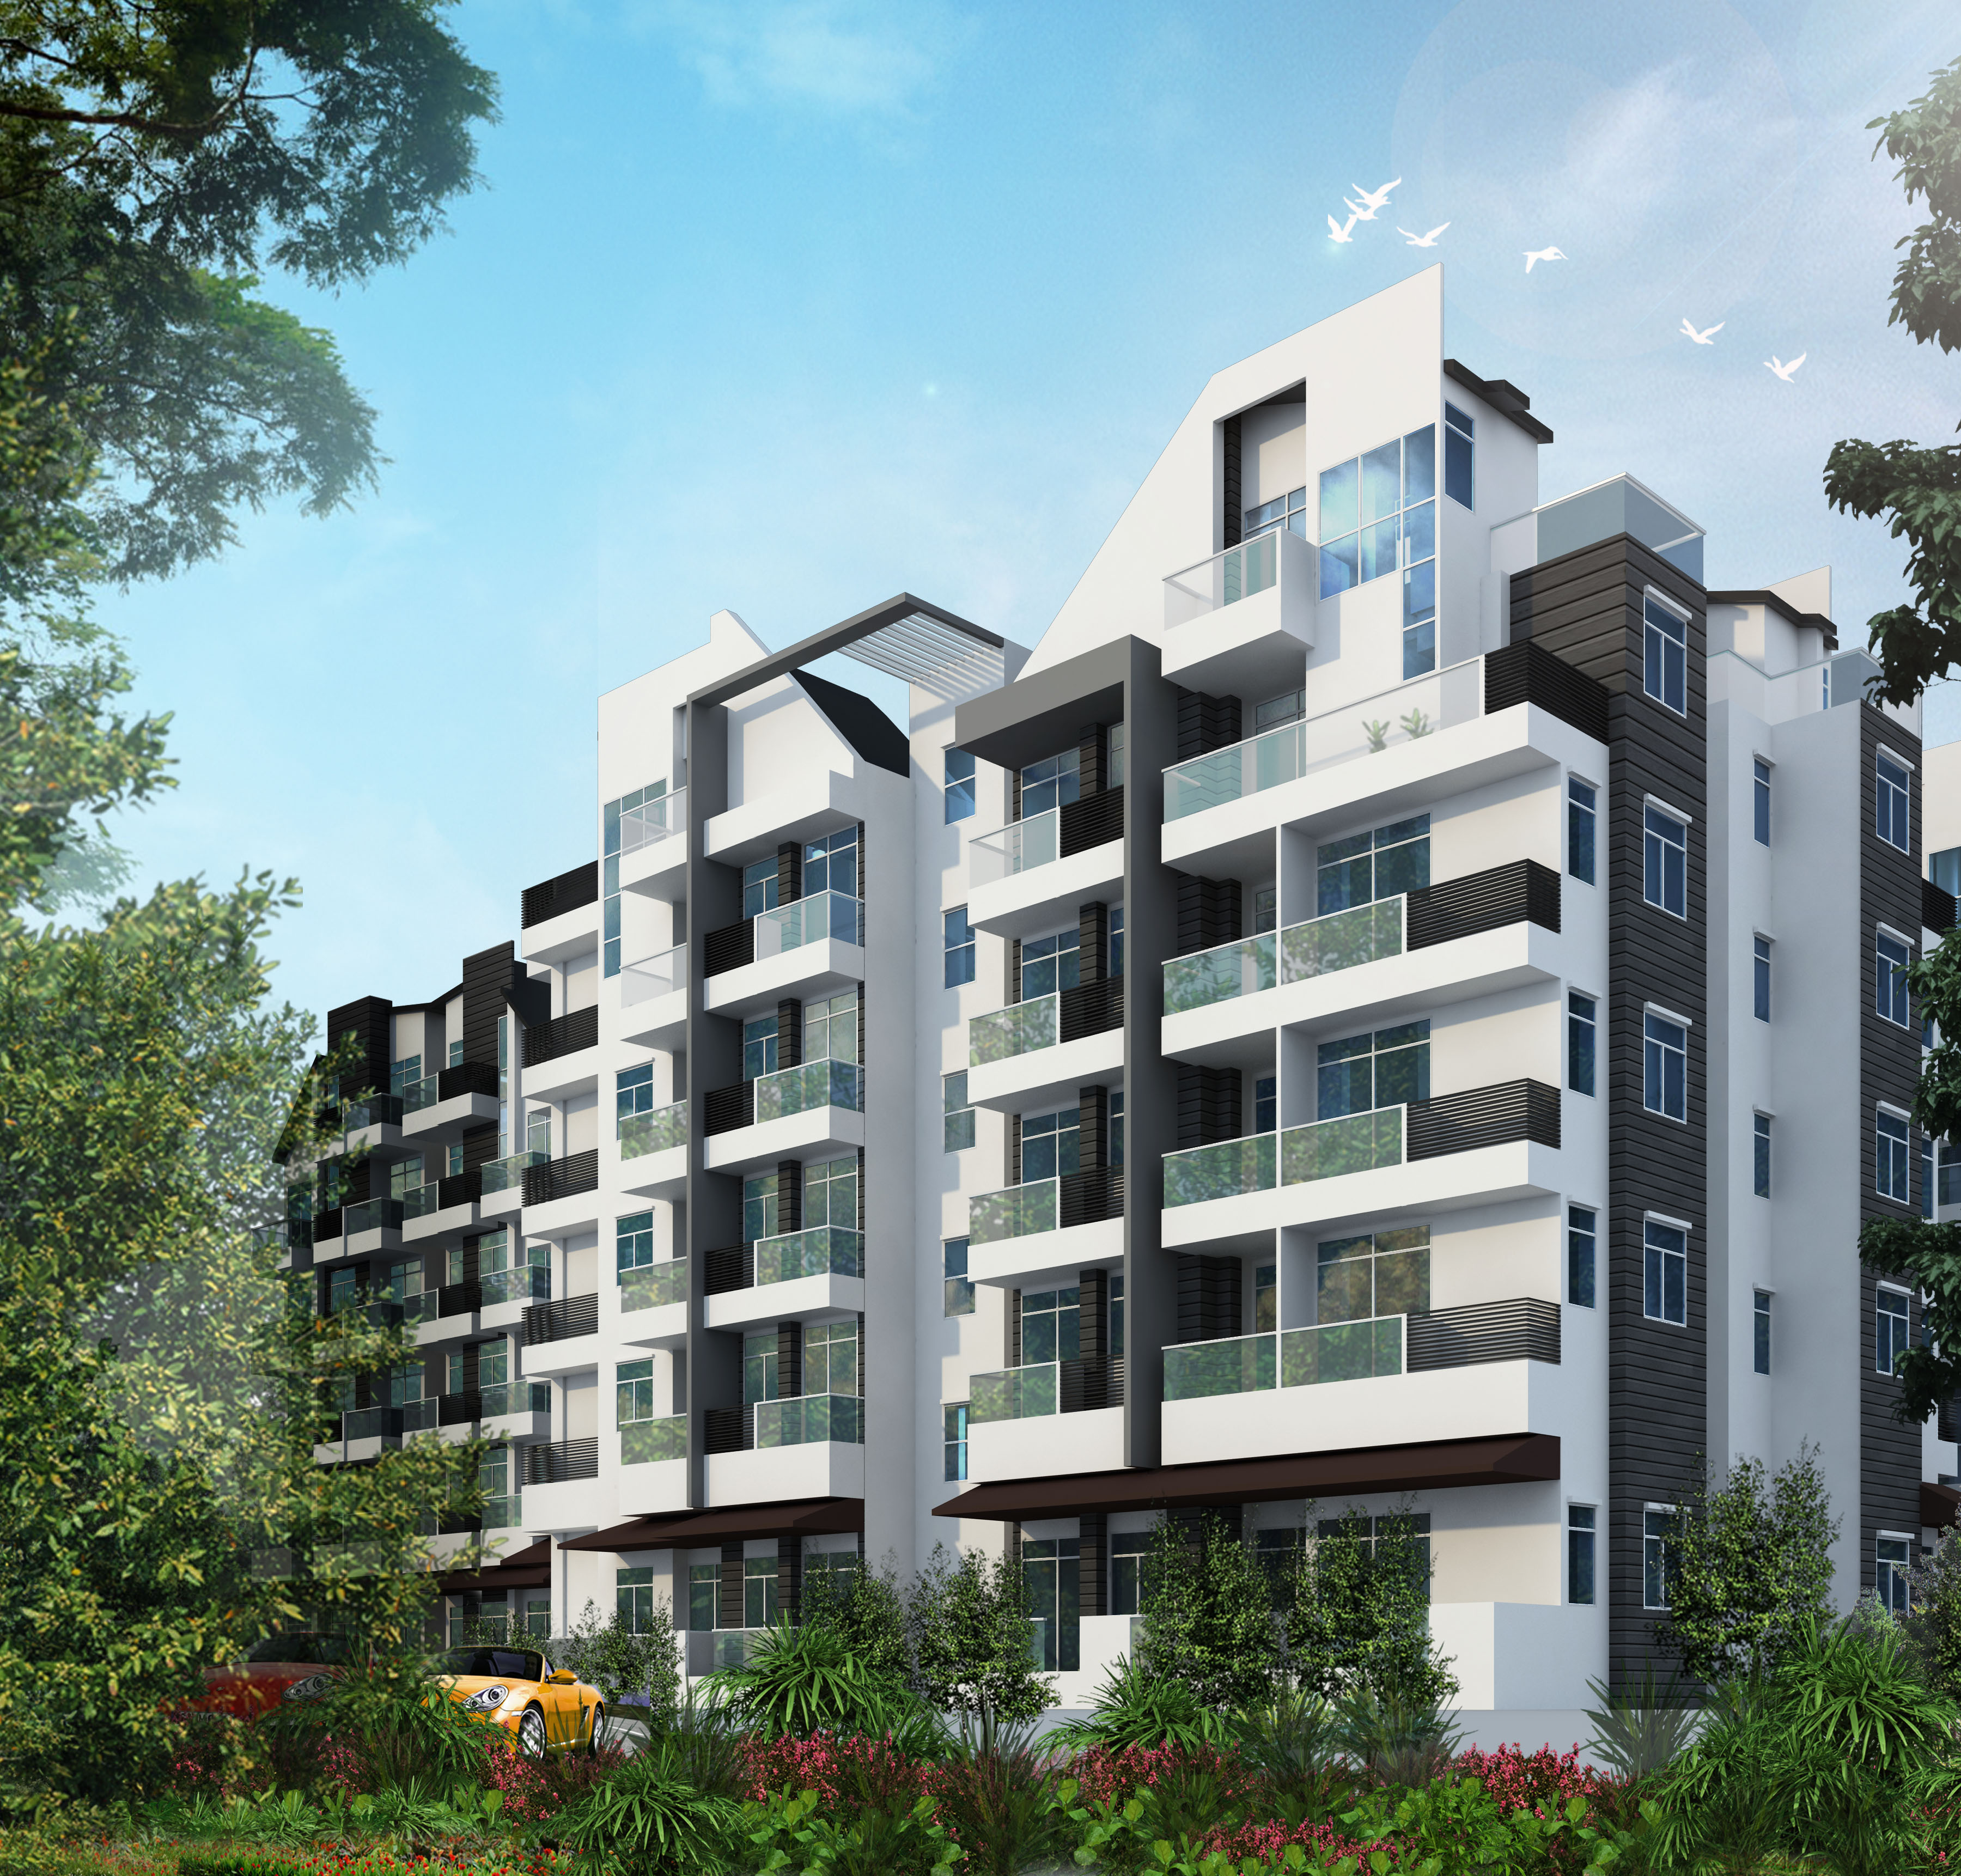 Suites@East Coast is situated along Upper East Coast road, close to Bedok Central